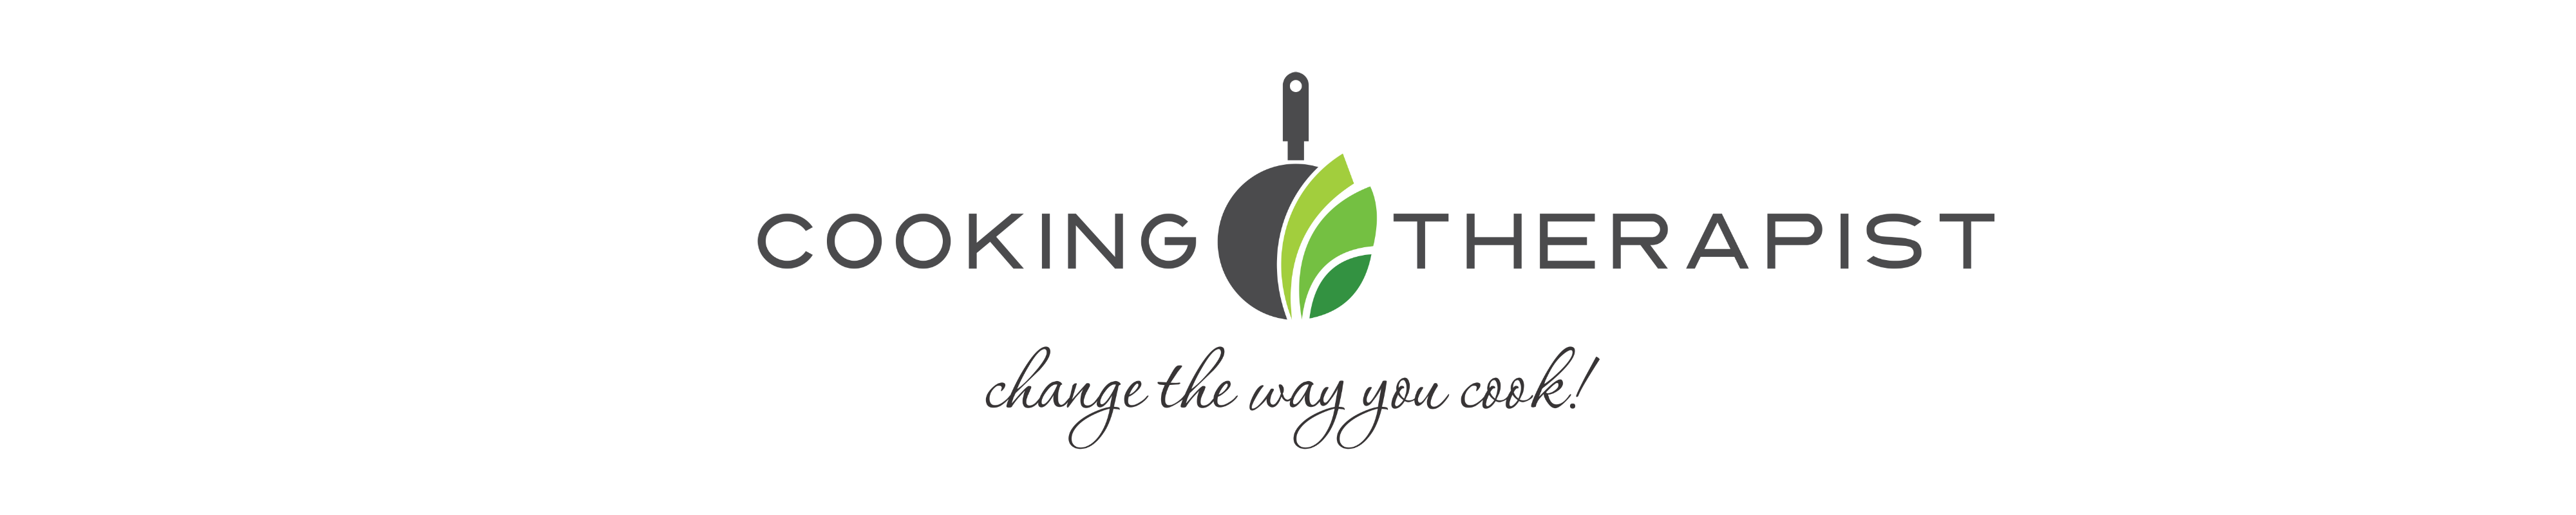 Cooking Therapist